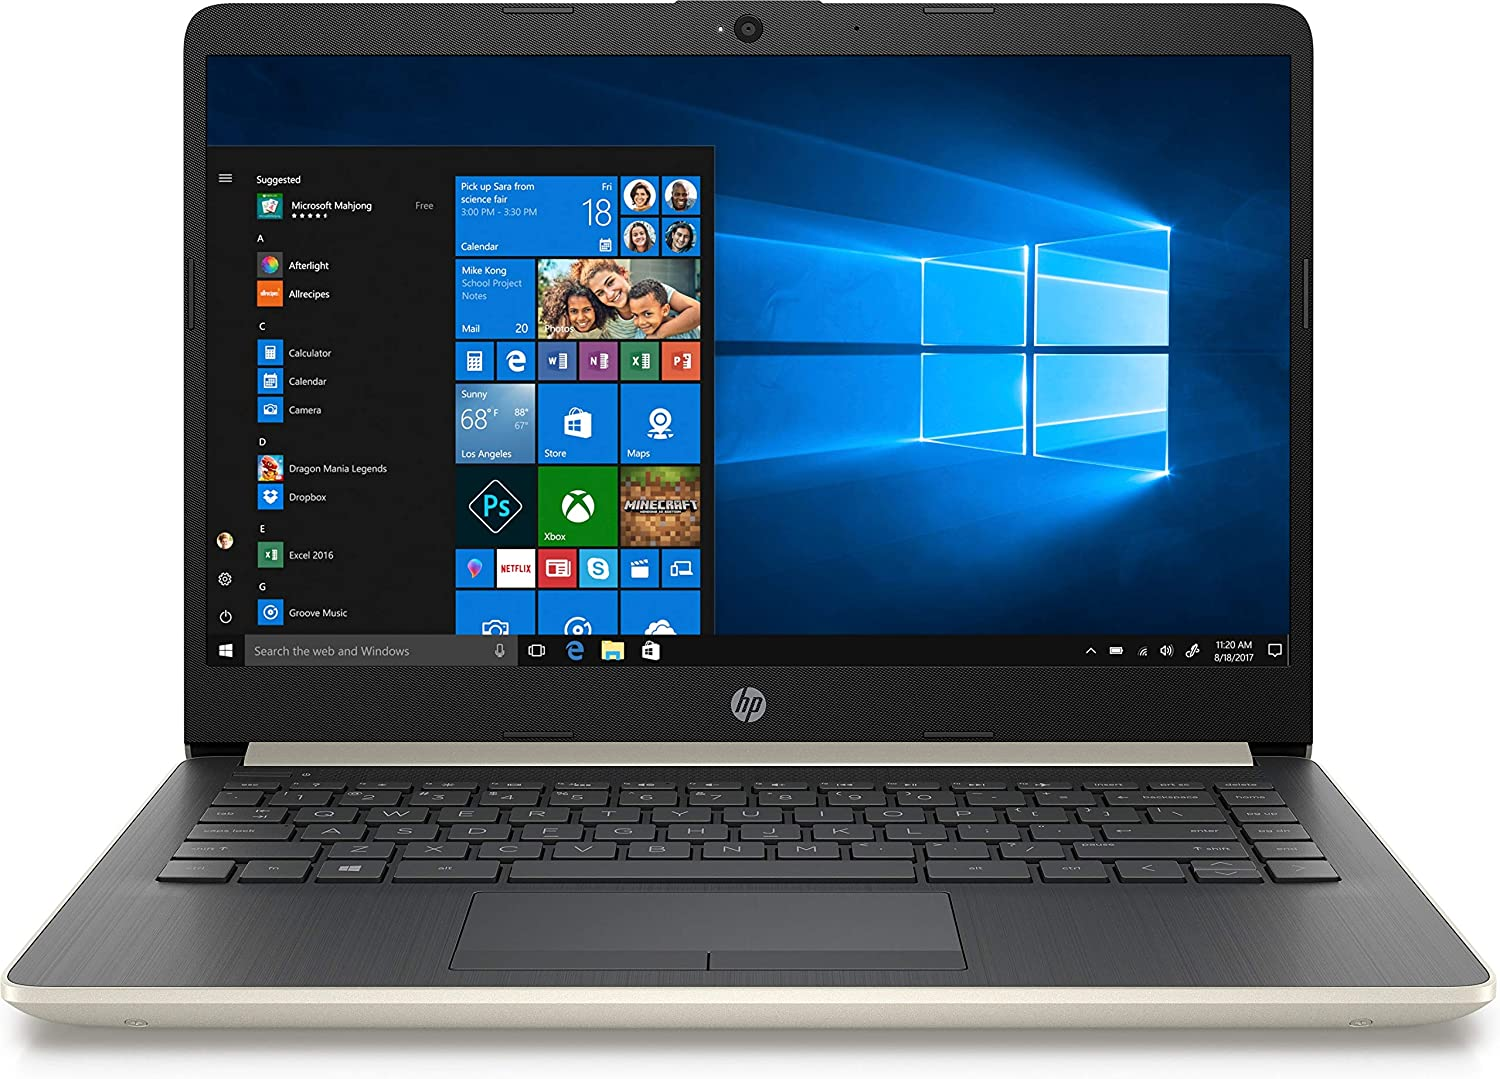 "2019 HP 14"" Laptop - Intel Core i3 (Up To 4GHz) - 8GB DDR4 Memory - 1TB SATA Hard Drive - Pale Gold and Ash Silver (14-CF0013DX)"